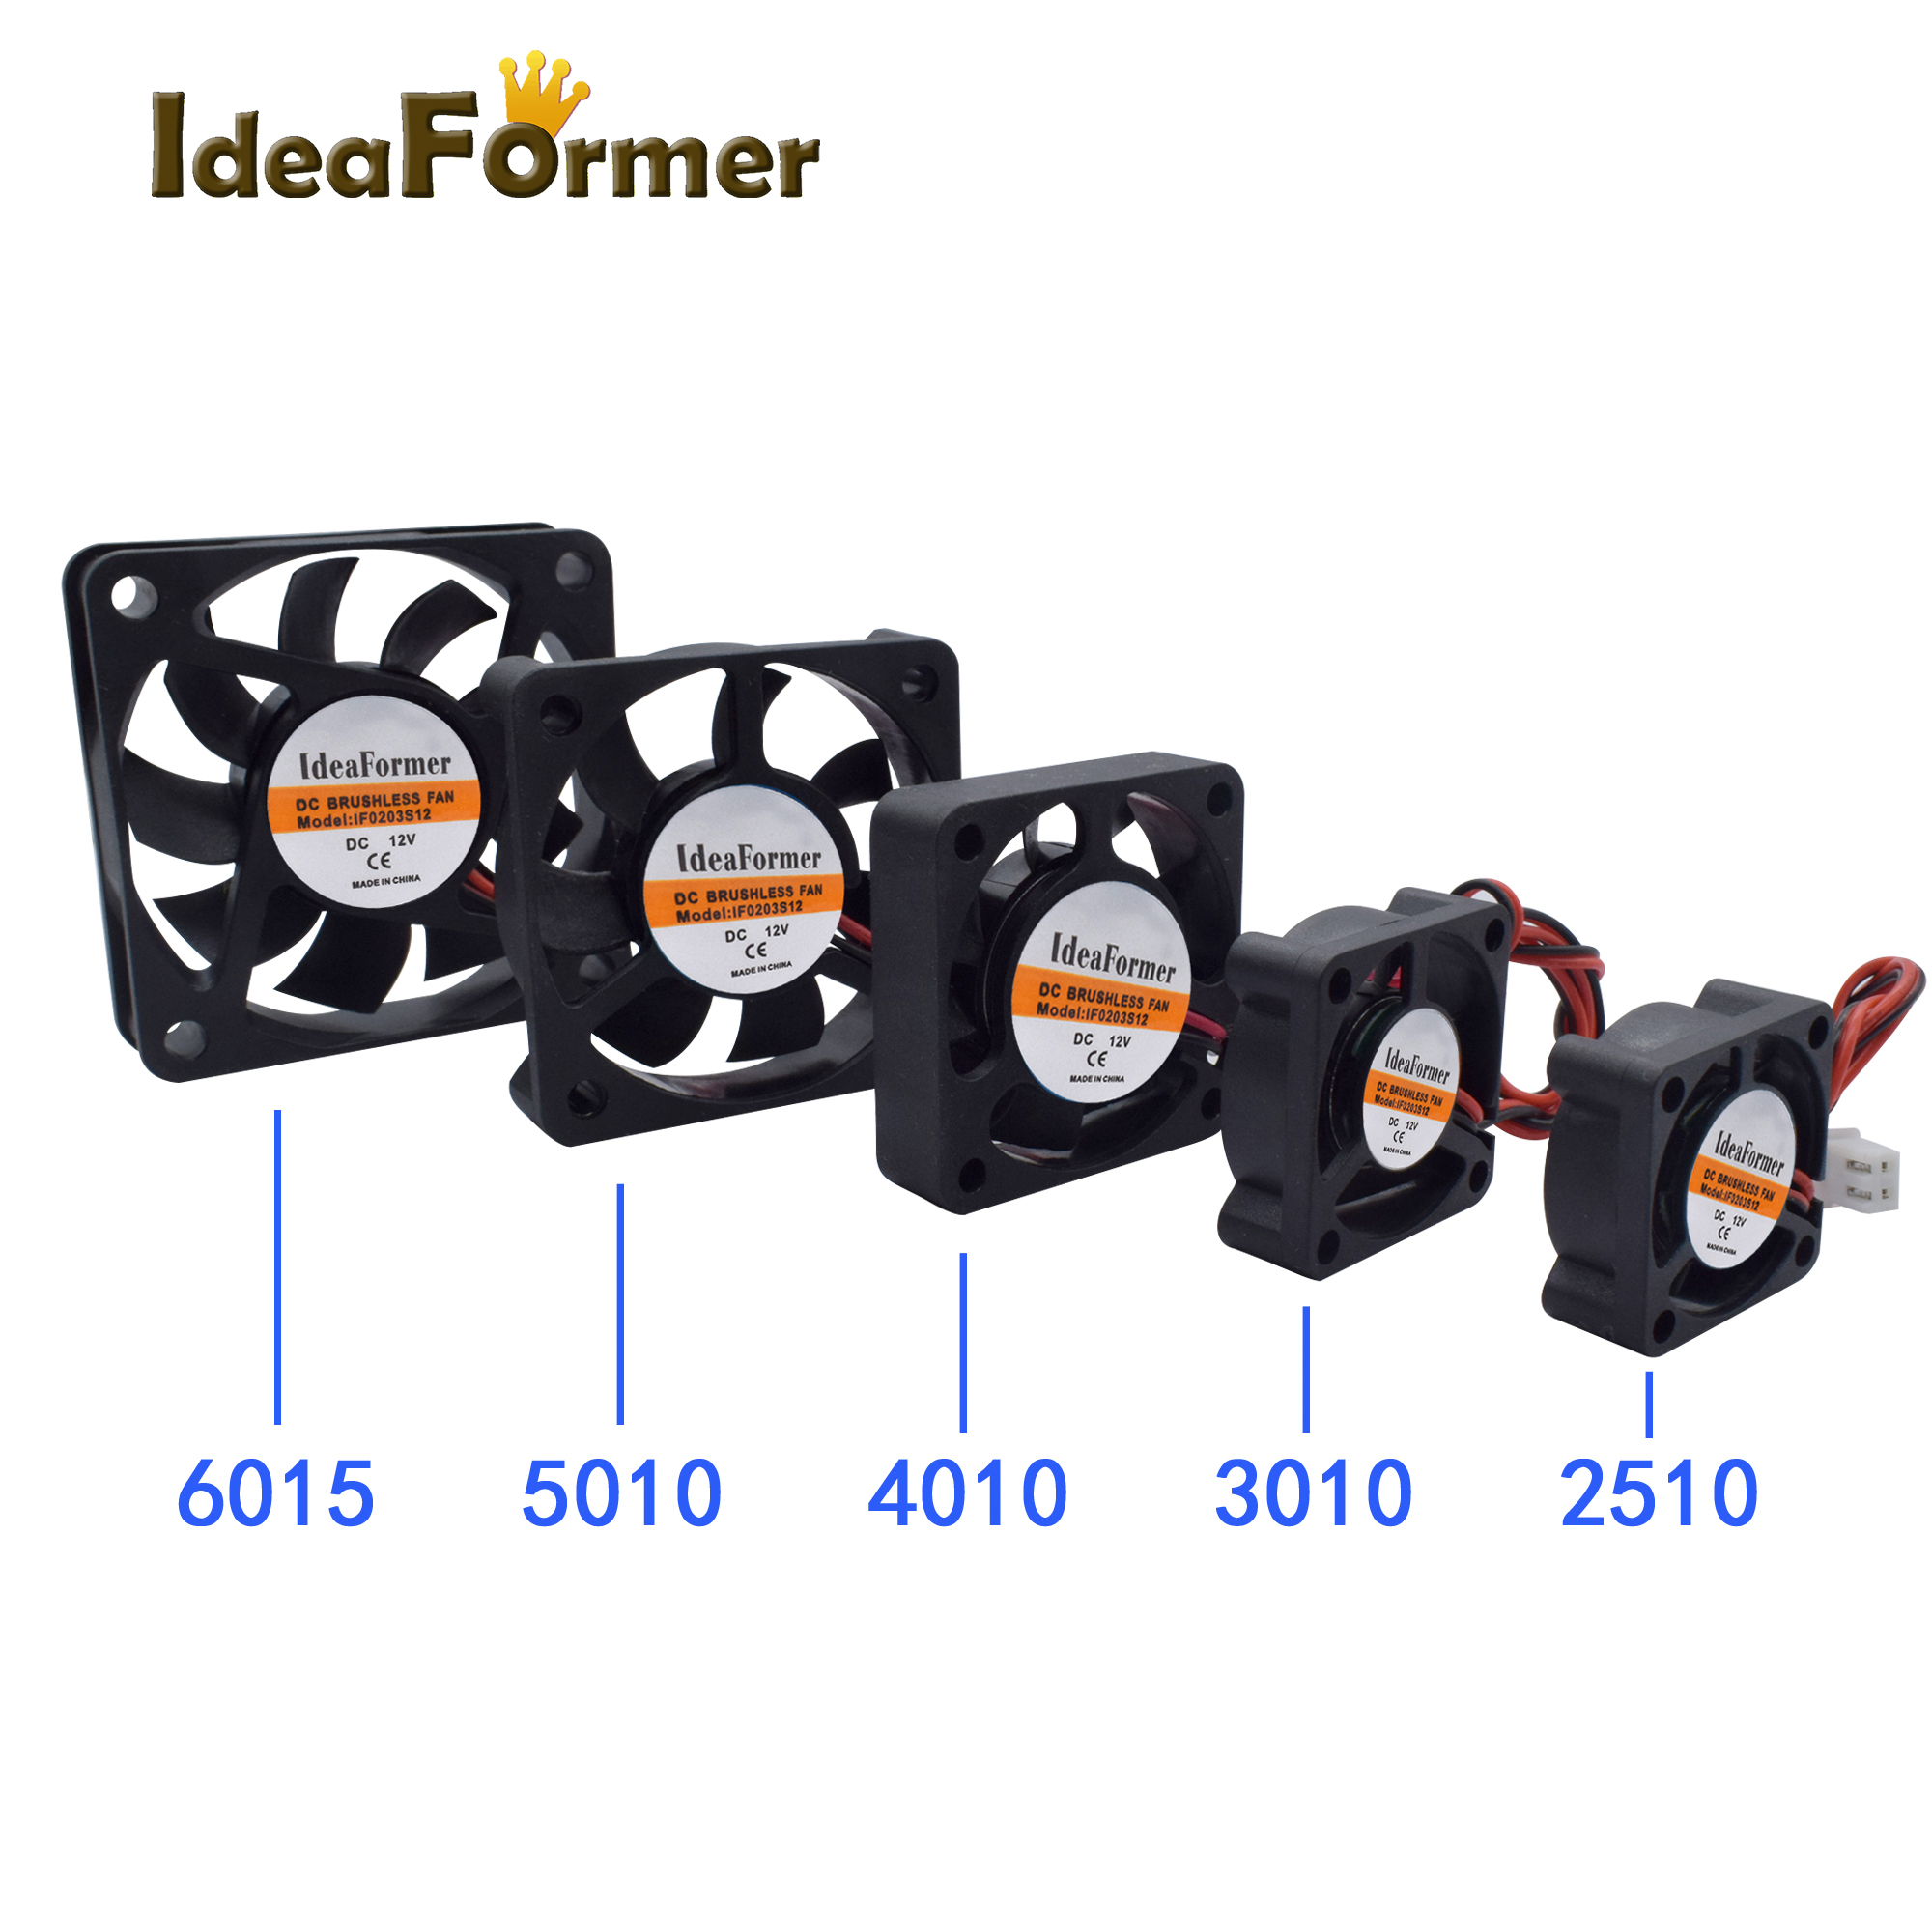 3D Printer Parts 2510/3010/<font><b>4010</b></font>/5010/6015mm 3D Printer Extruder Cooler <font><b>Fan</b></font> DC 5/12/<font><b>24V</b></font> With 2Pin Dupont Wire Black Plastic image